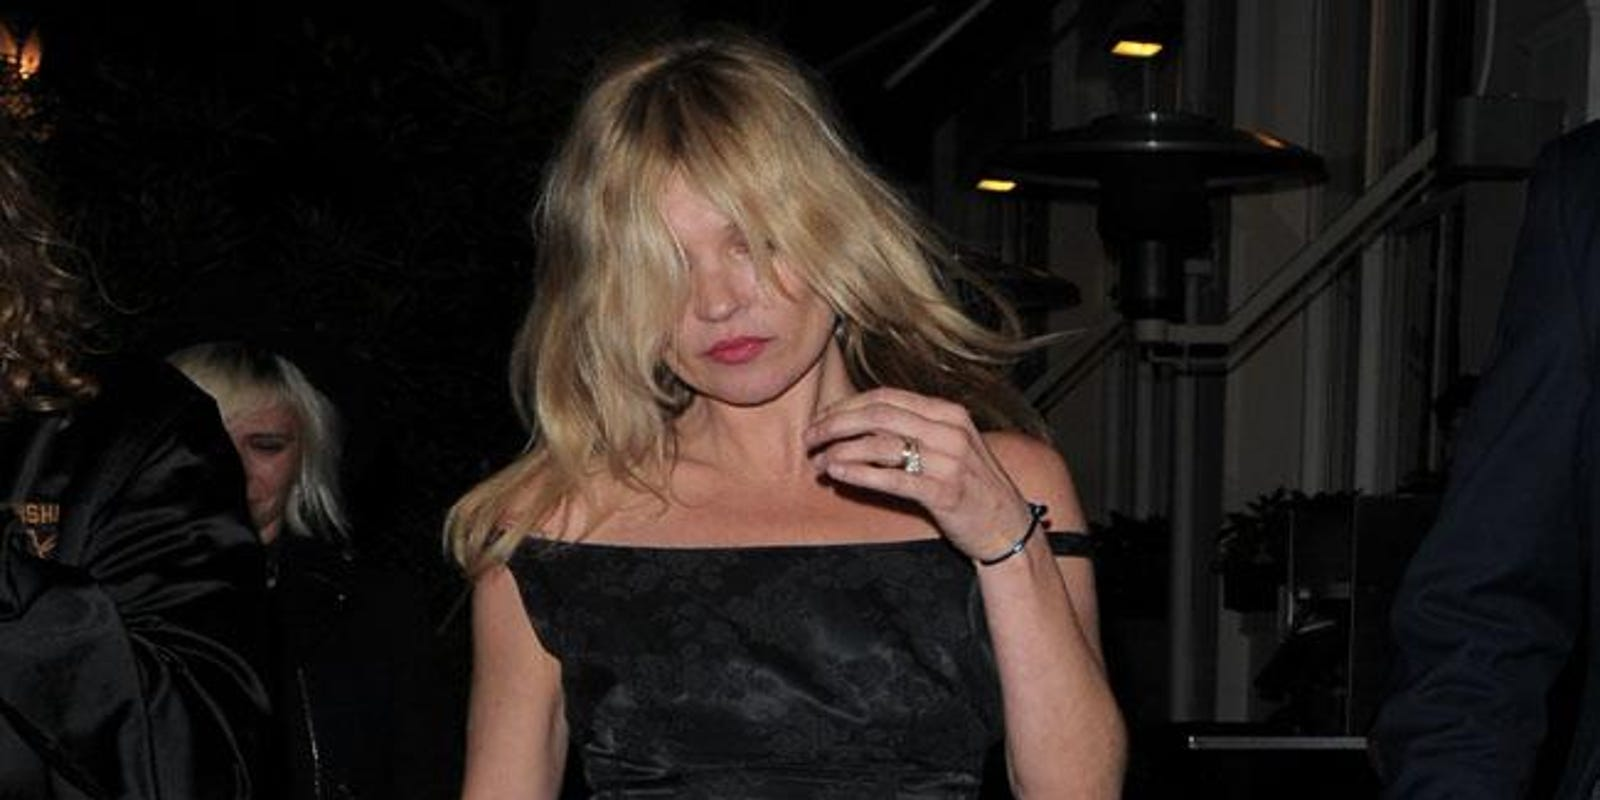 Allie Marie Evans Feet kate moss cancels ibiza trip to be with family